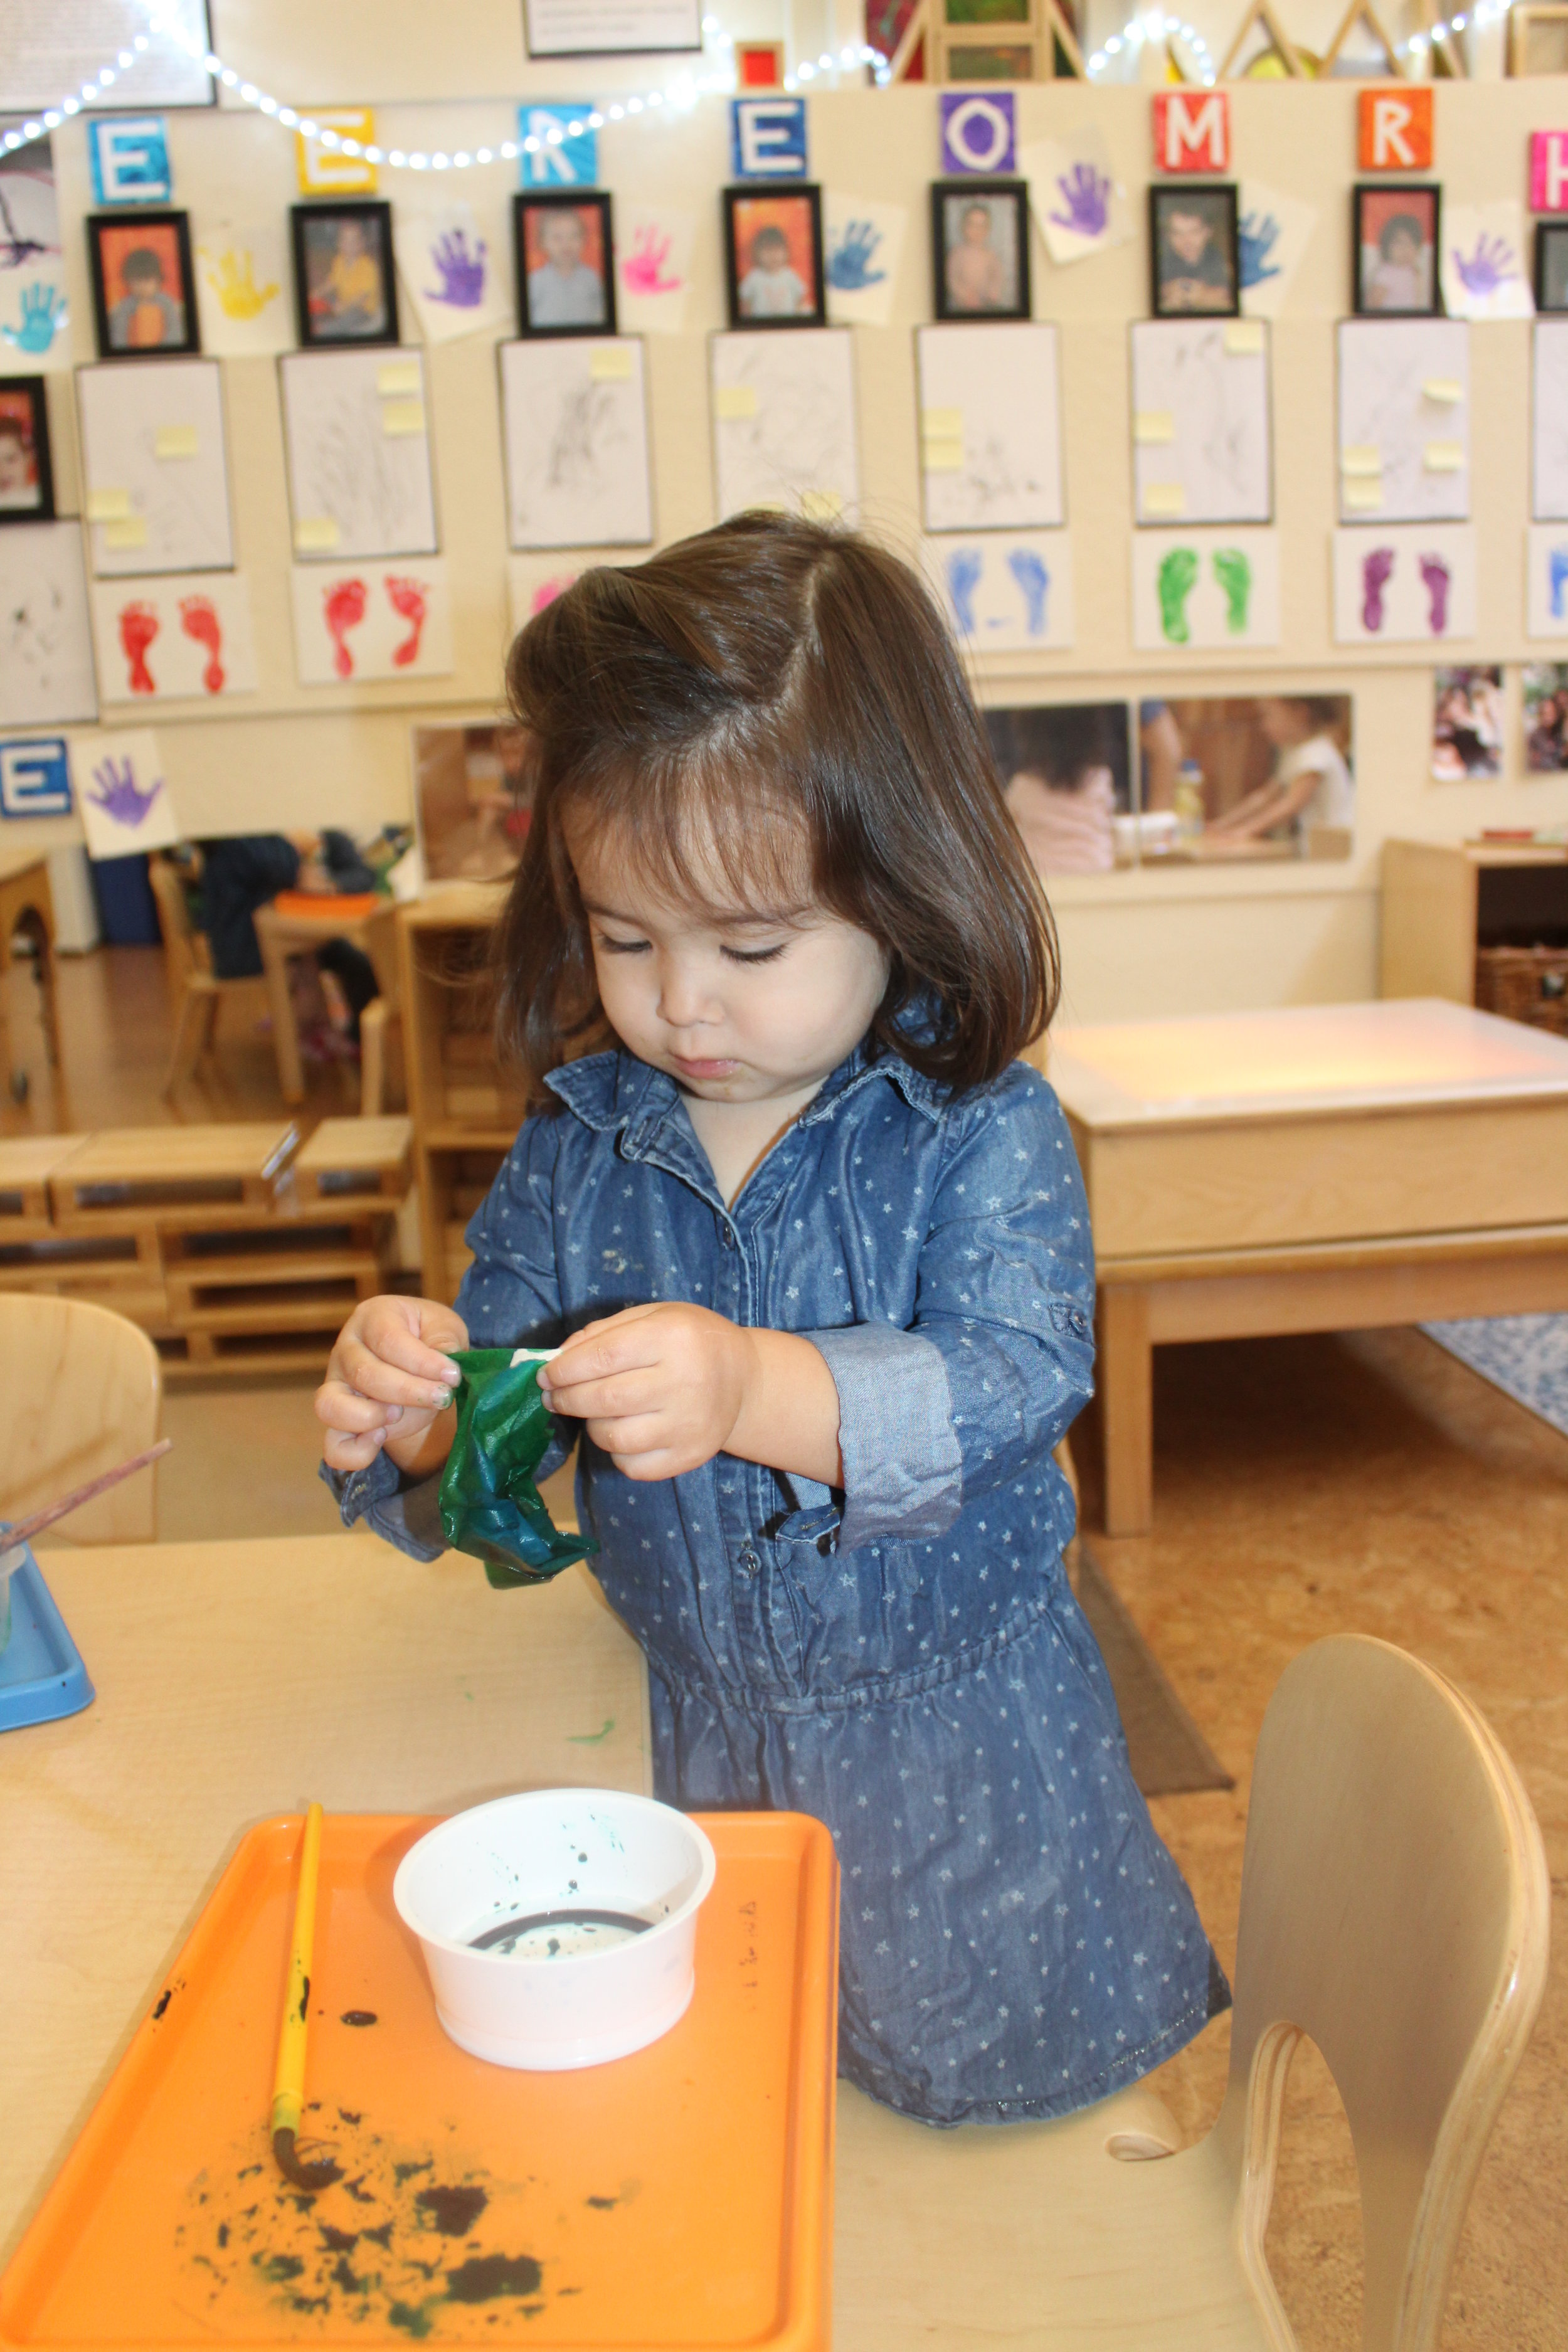 Earth Day activity, using coffee filter paper, blue and green watercolor, representing the earth.